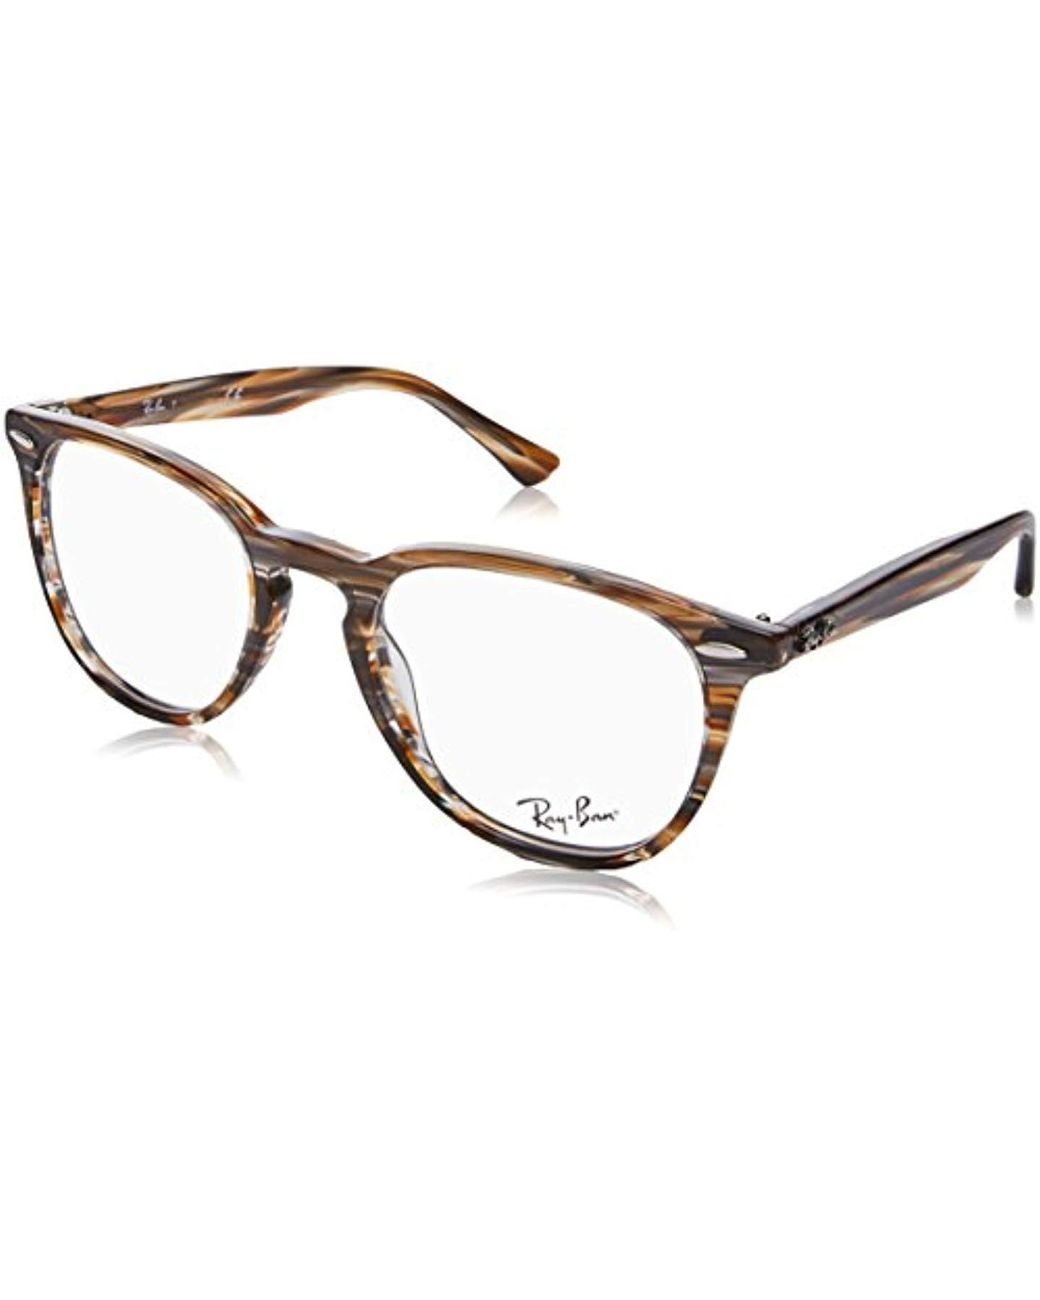 1d4510a489 Ray-Ban Rx7159 5749 50 Glasses In Brown Grey Striped Rx7159 5749 50 ...